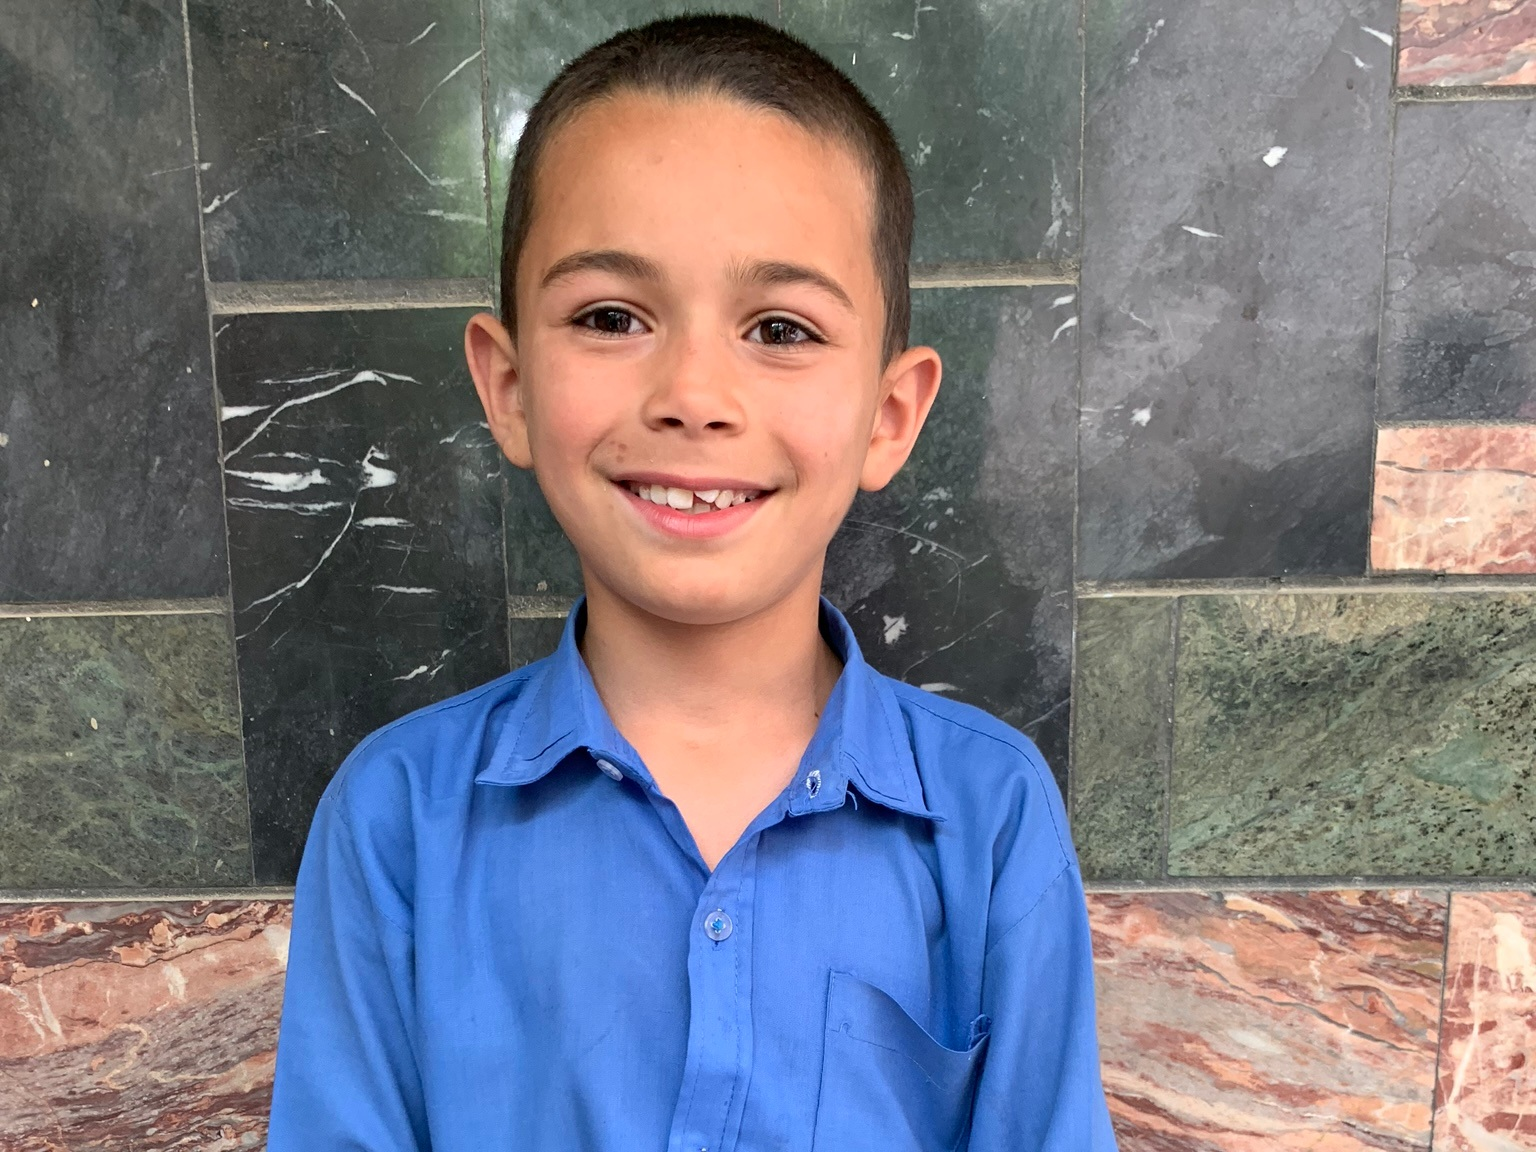 Ali Husin, Age 10 - Ali Husin has 4 siblings. His mother does not have work and his father is a driver.BE ALI HUSIN'S PARTNER>